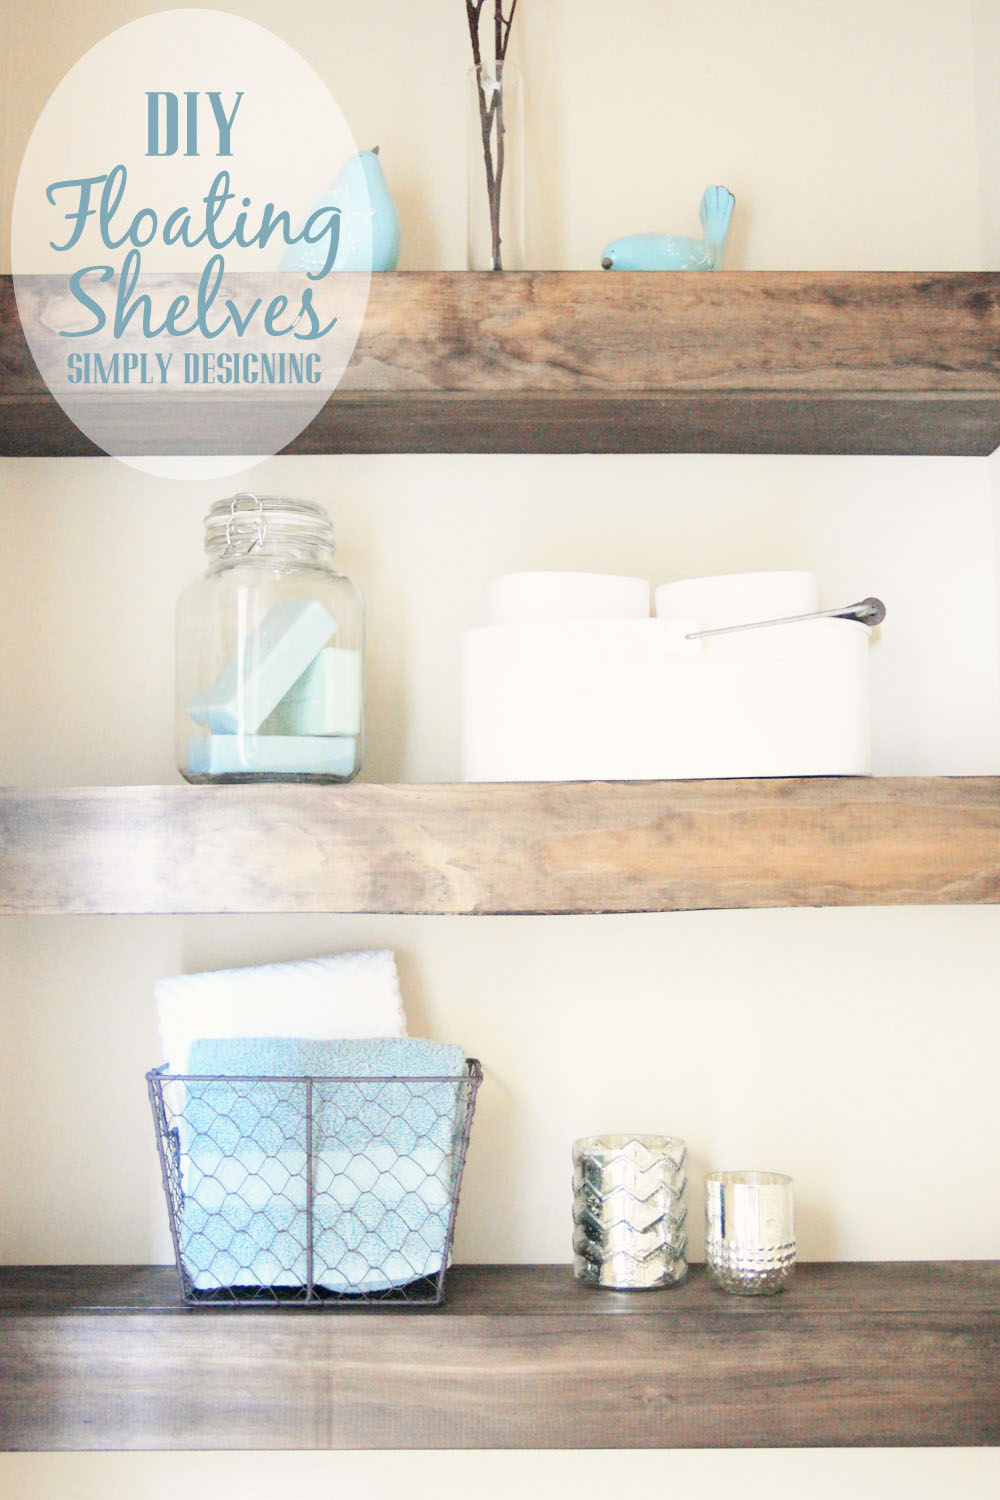 DIY Built In Floating Shelves | How To Build Floating Shelves   These Make A